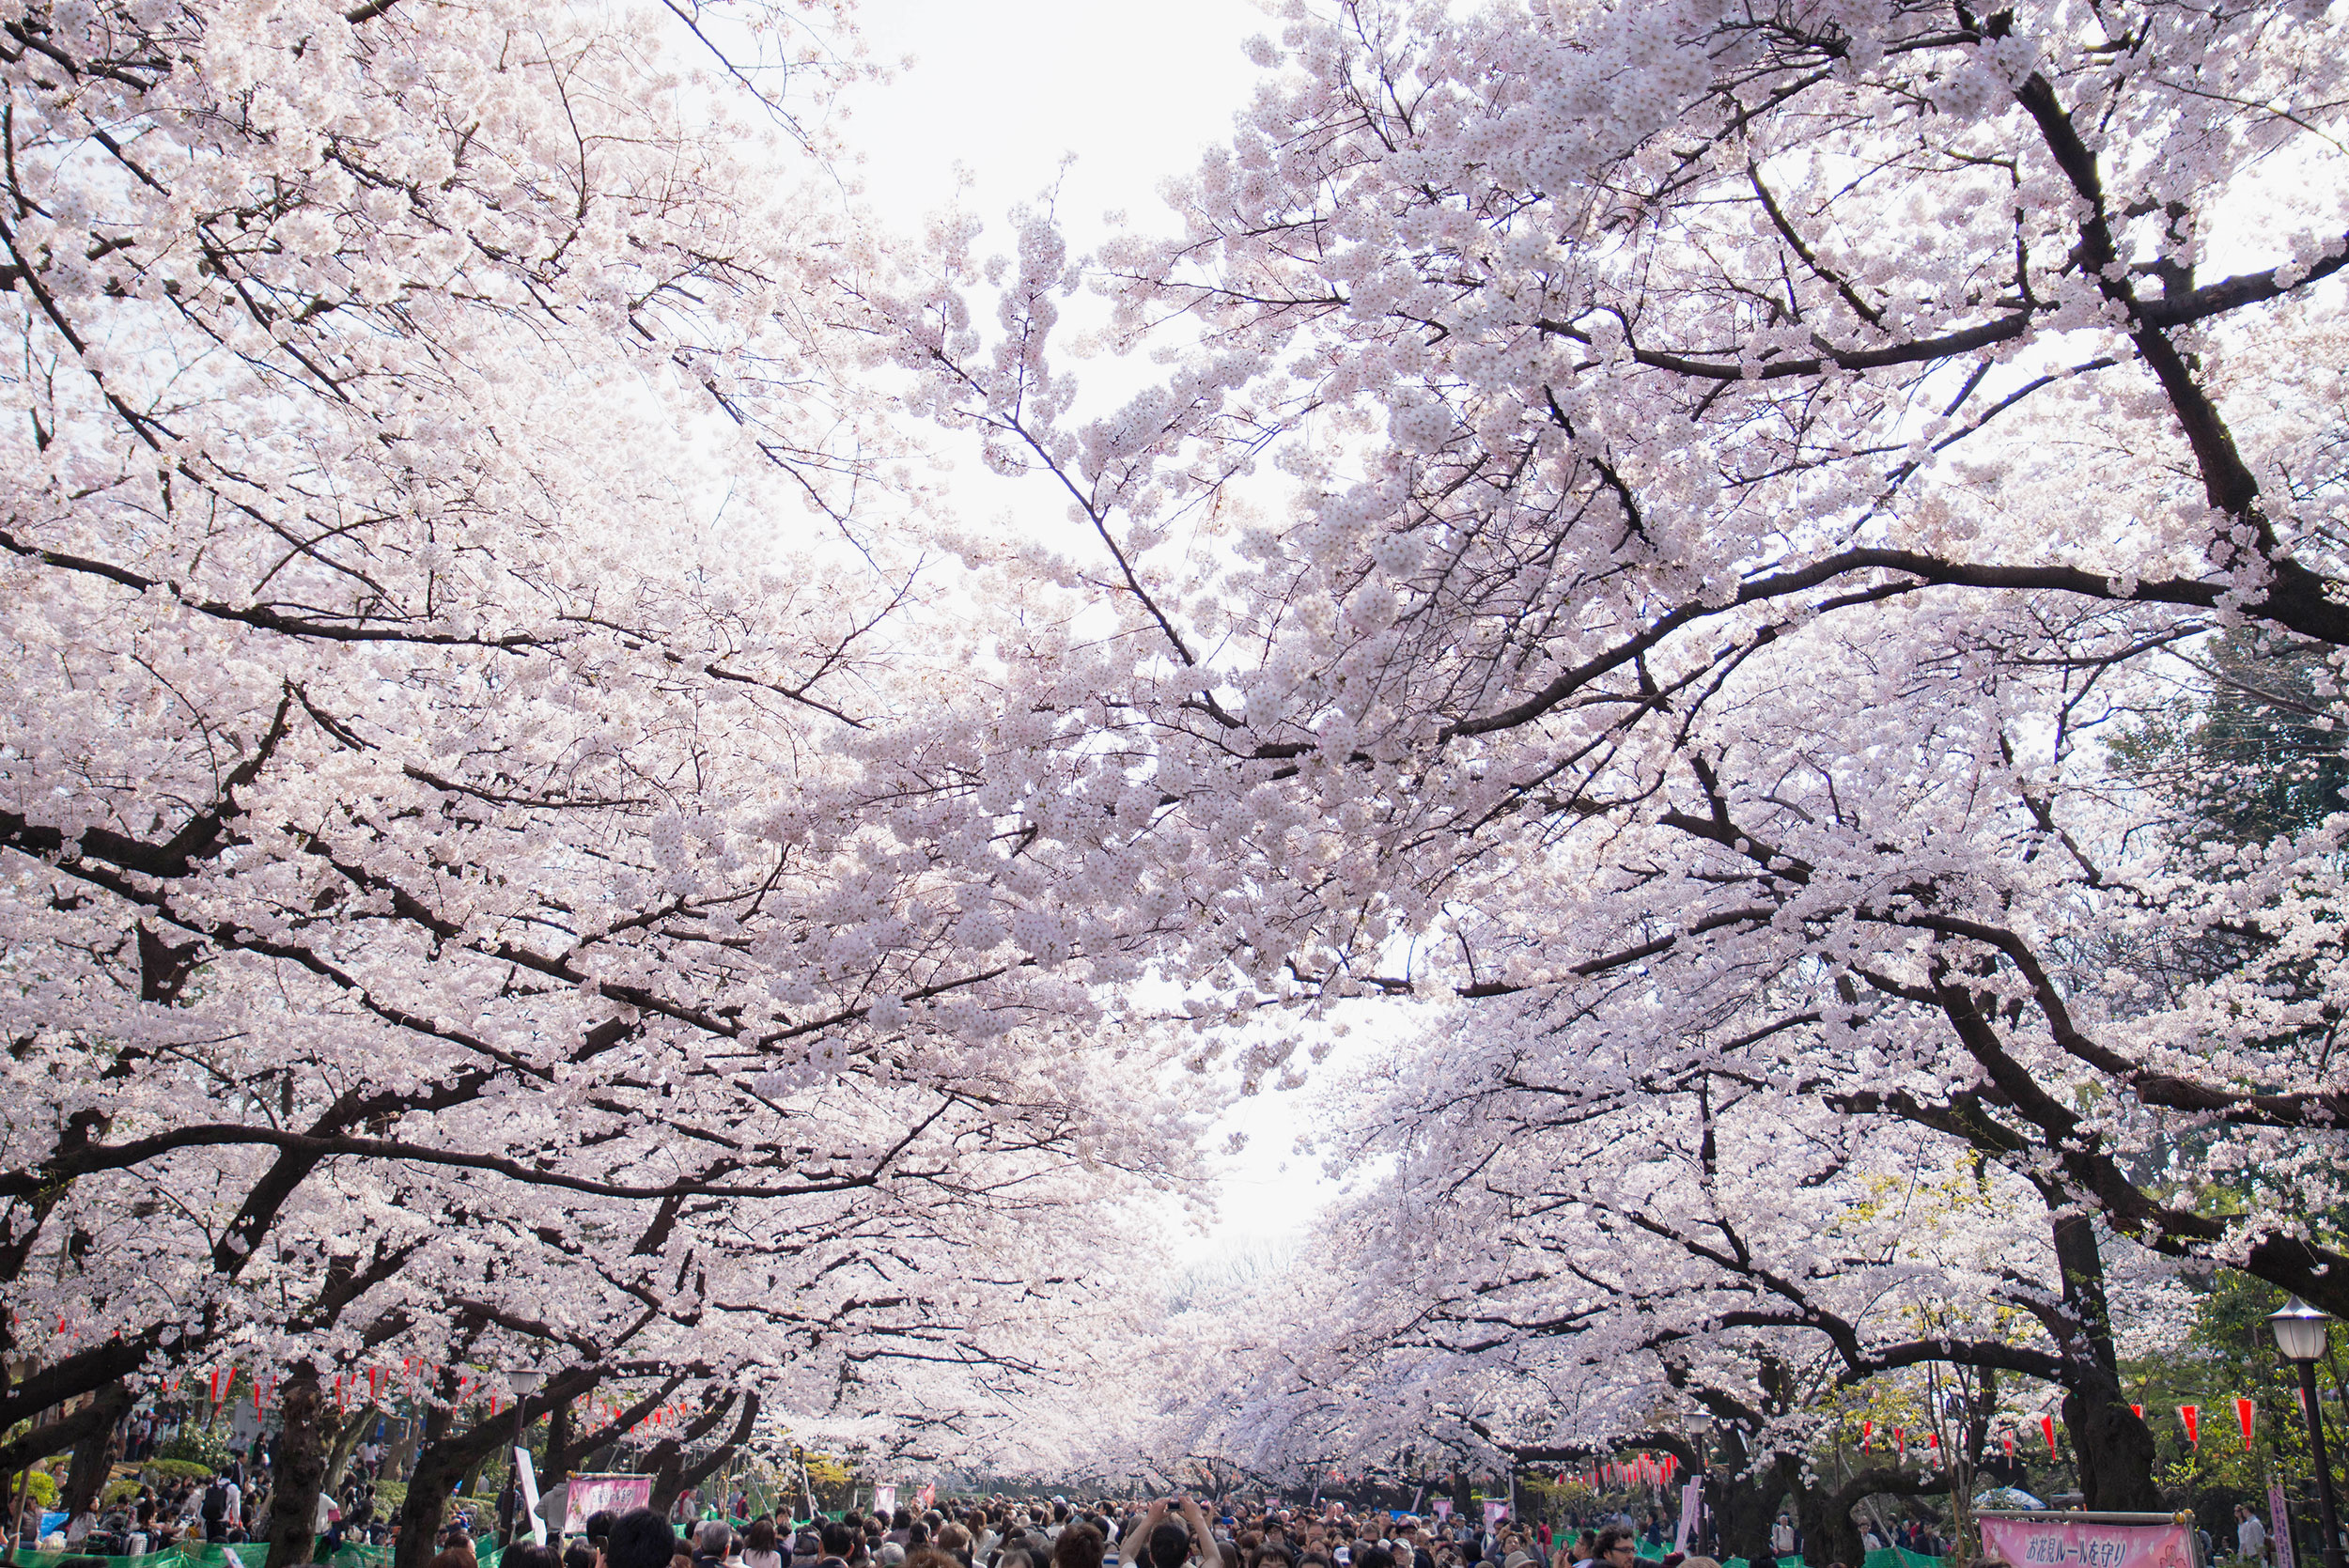 Cherry blossoms over a main walkway in Ueno Park